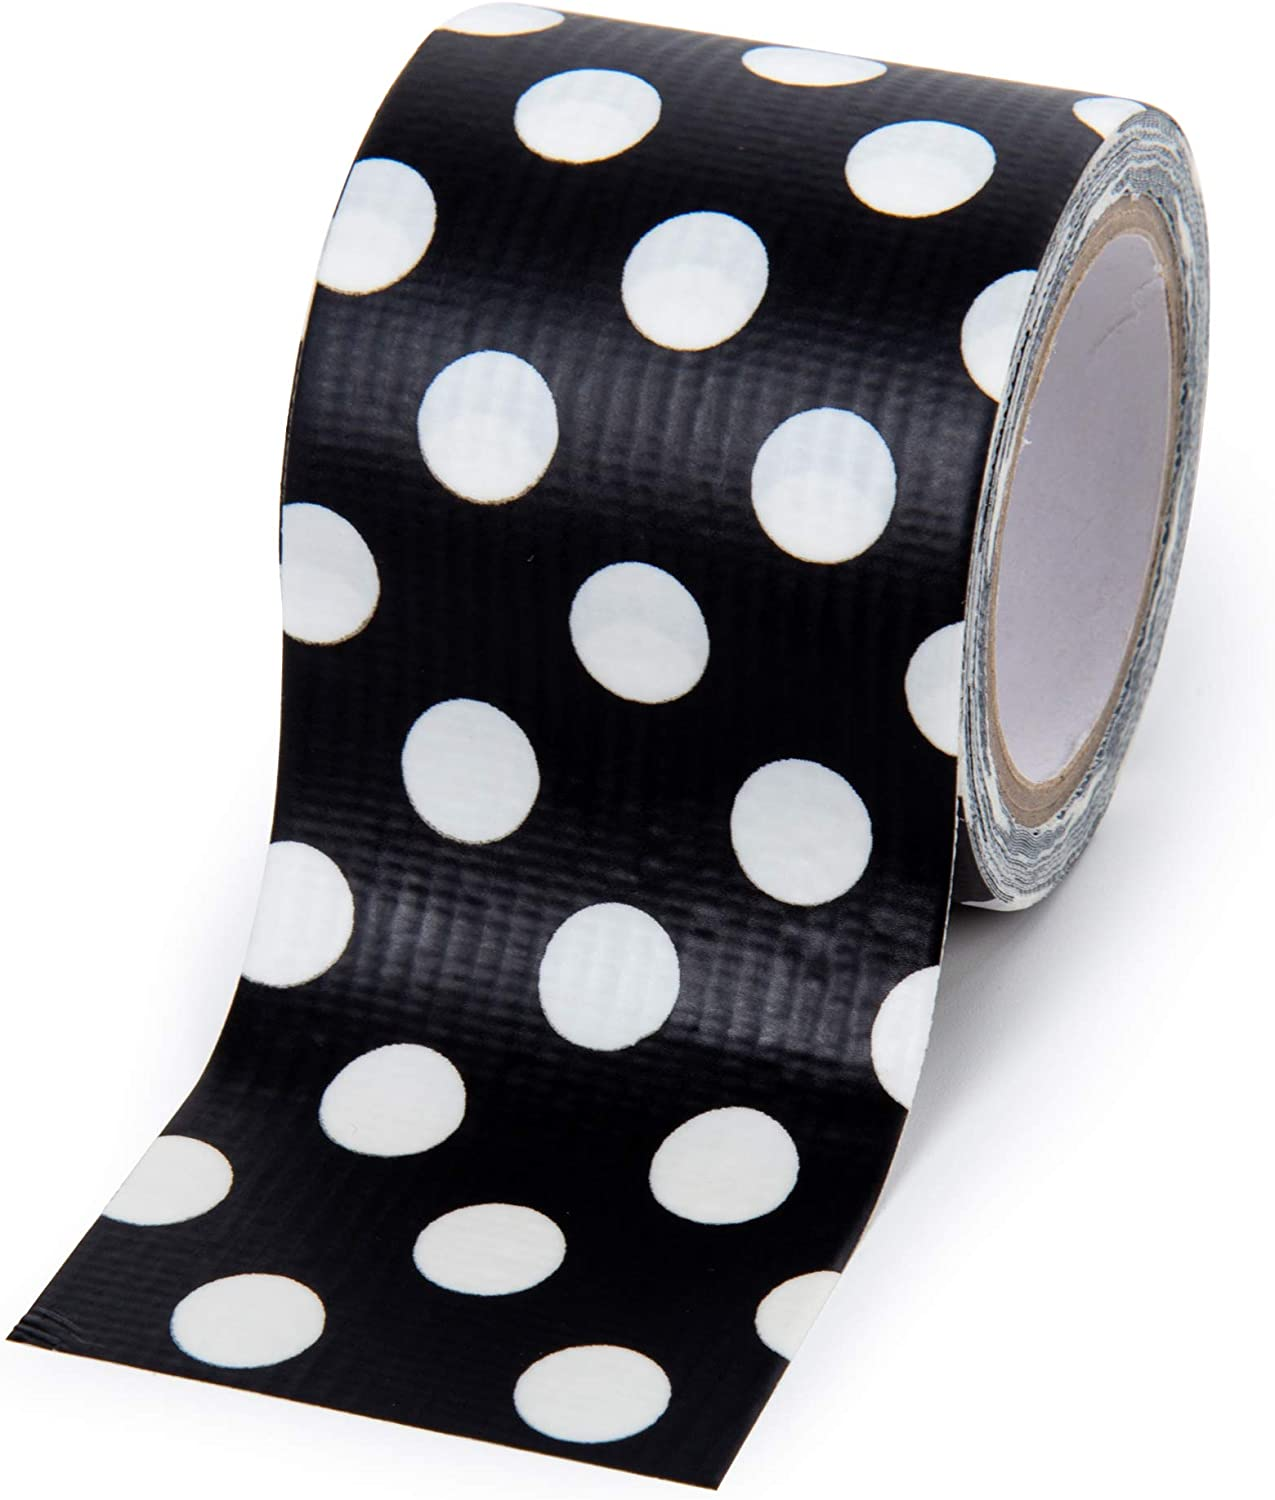 48mm x 4.5-meter 6 Pieces Fun Craft Duct Tapes Time 4 Crafts 44074DC-6 Vibrant Polka Dots Black